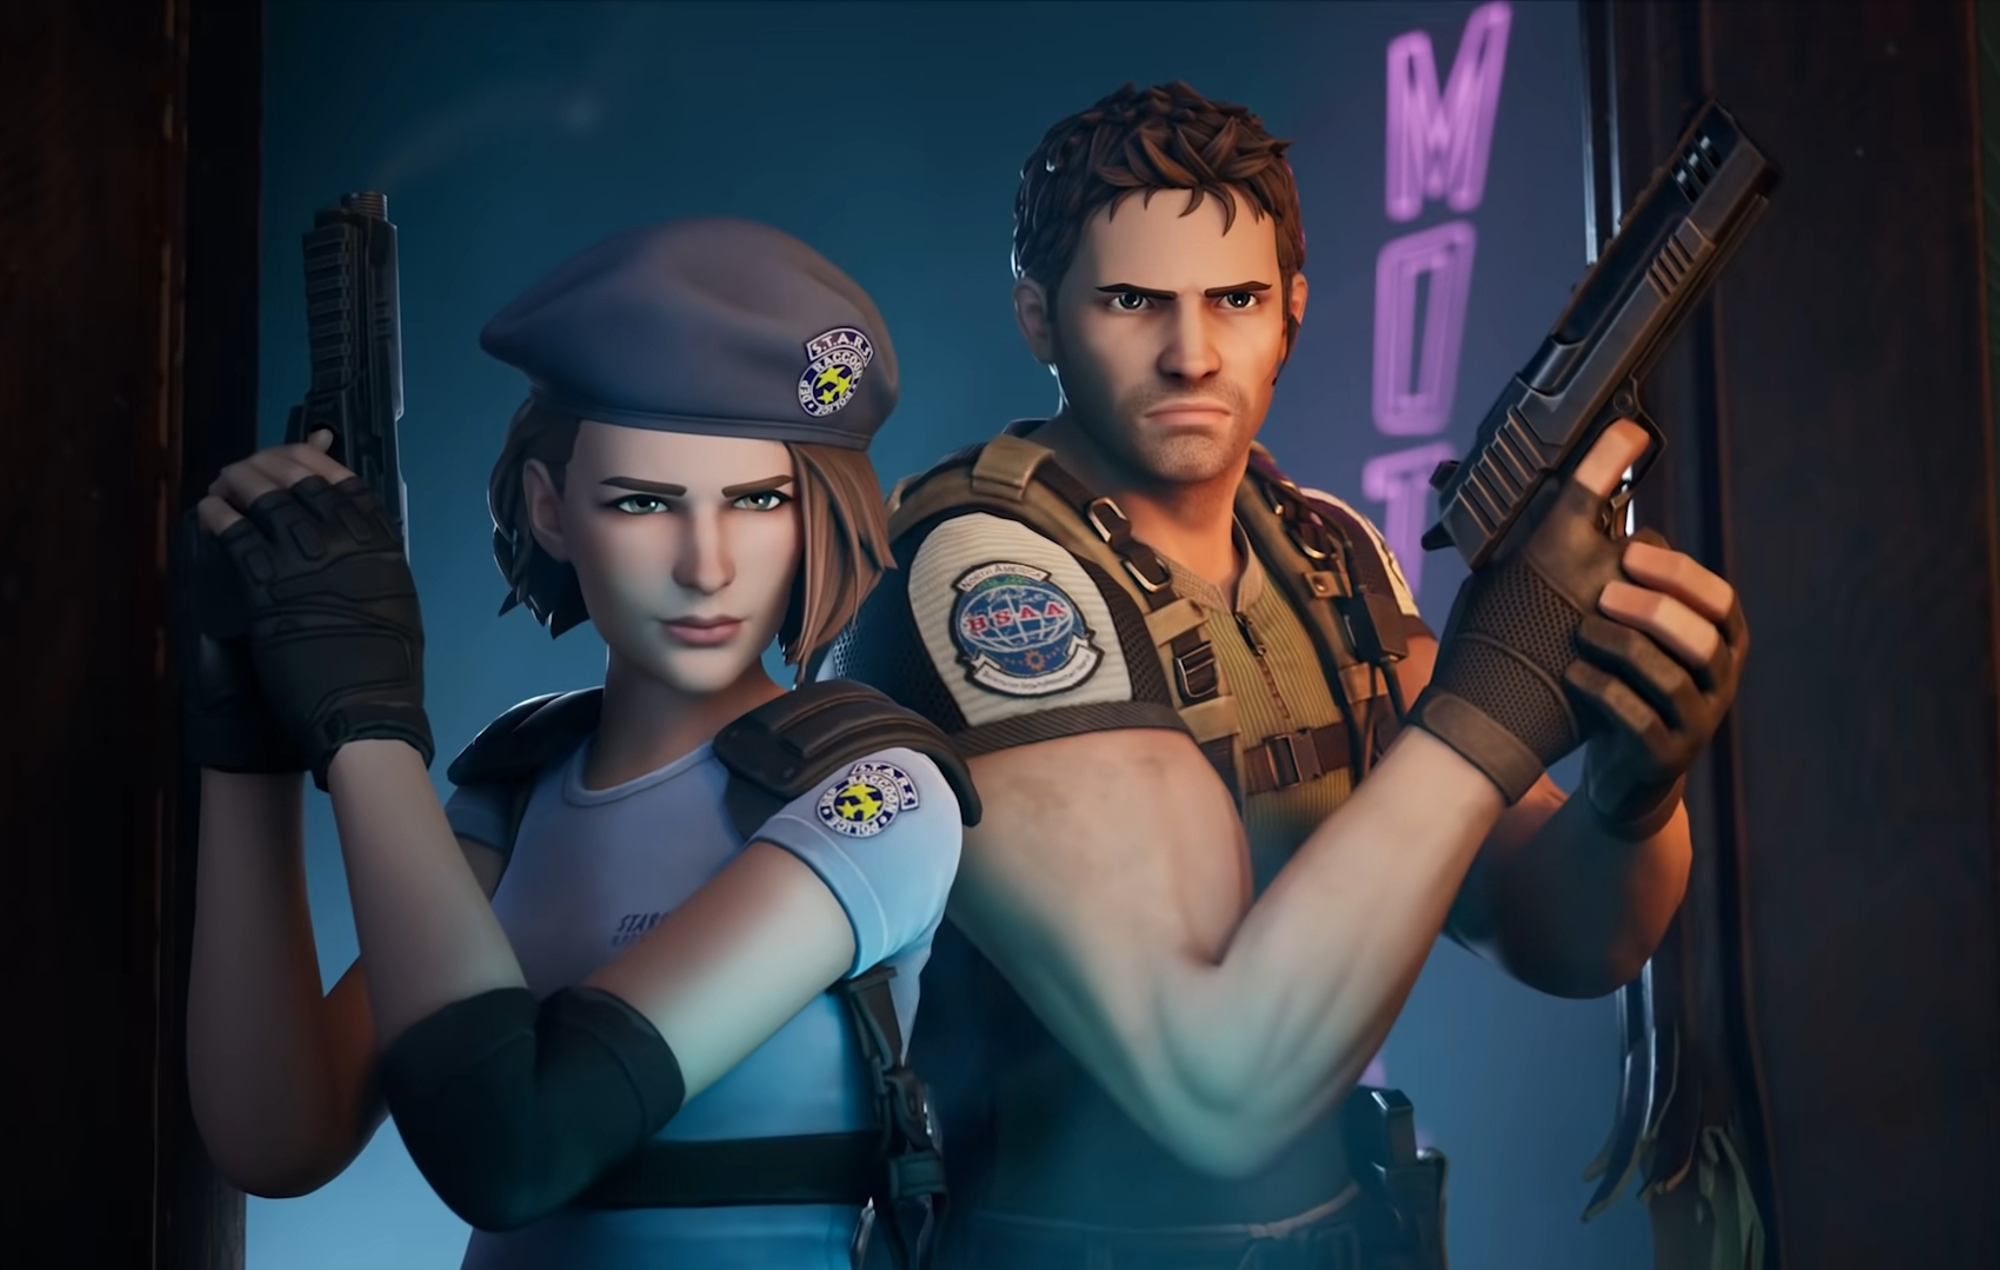 'Fortnite' adds 'Resident Evil' characters Chris Redfield and Jill Valentine - NME